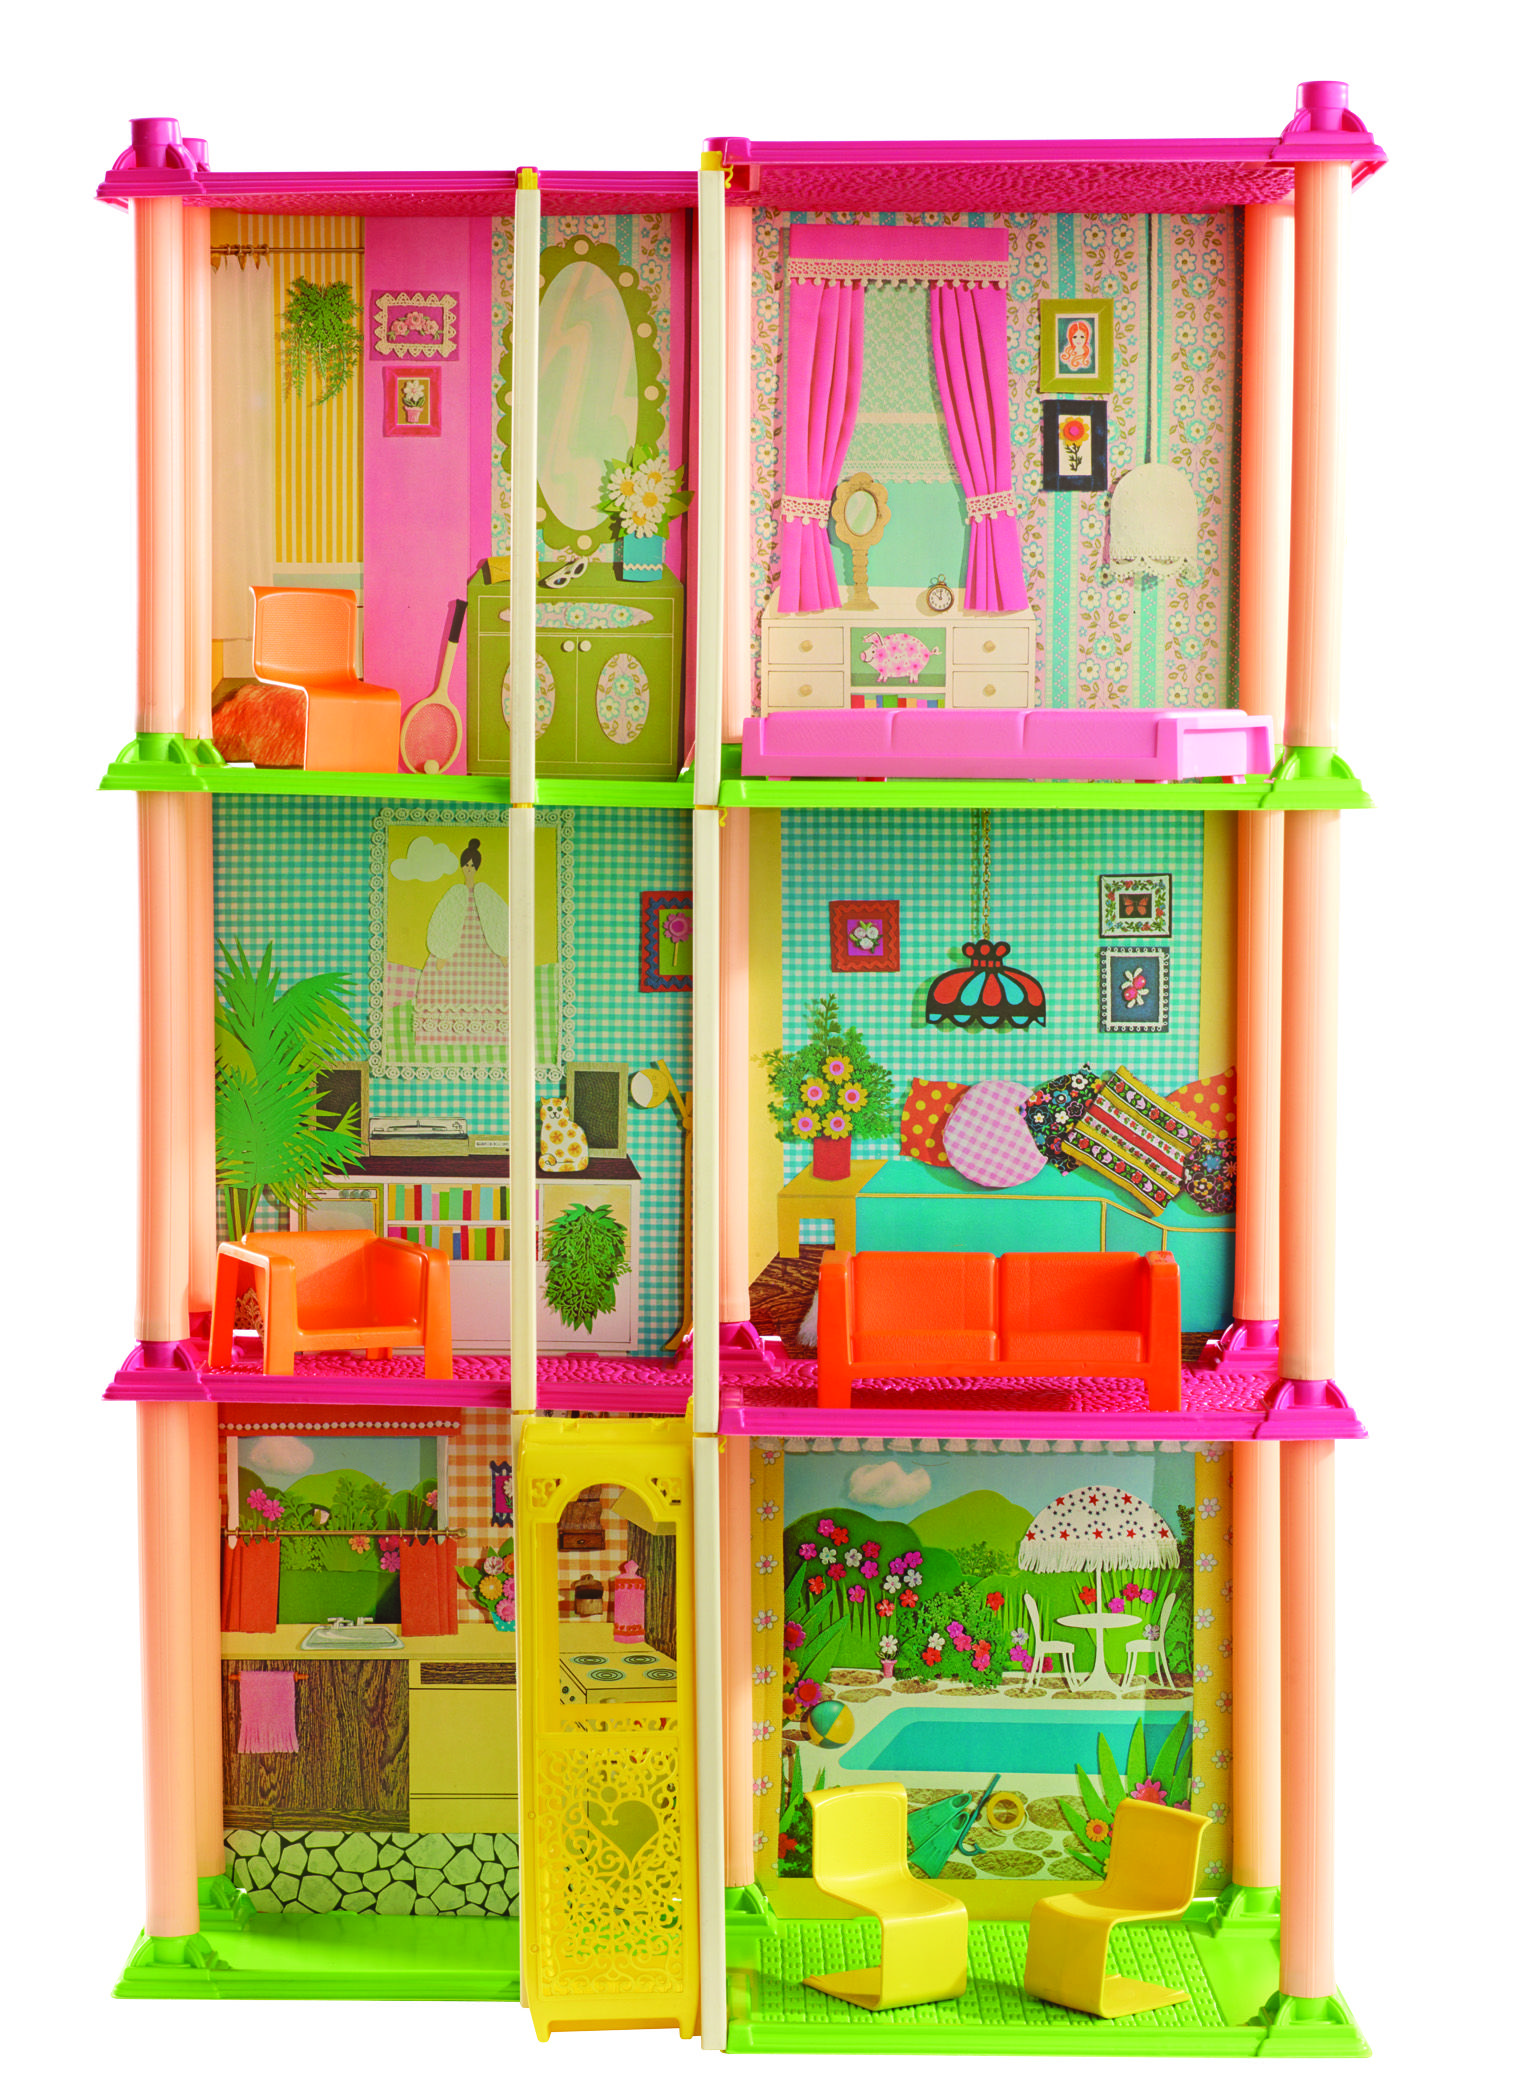 Pin By Jane Richter Baker On I Play With Dolls Other Toys Barbie Townhouse Barbie Dream House Barbie Dream